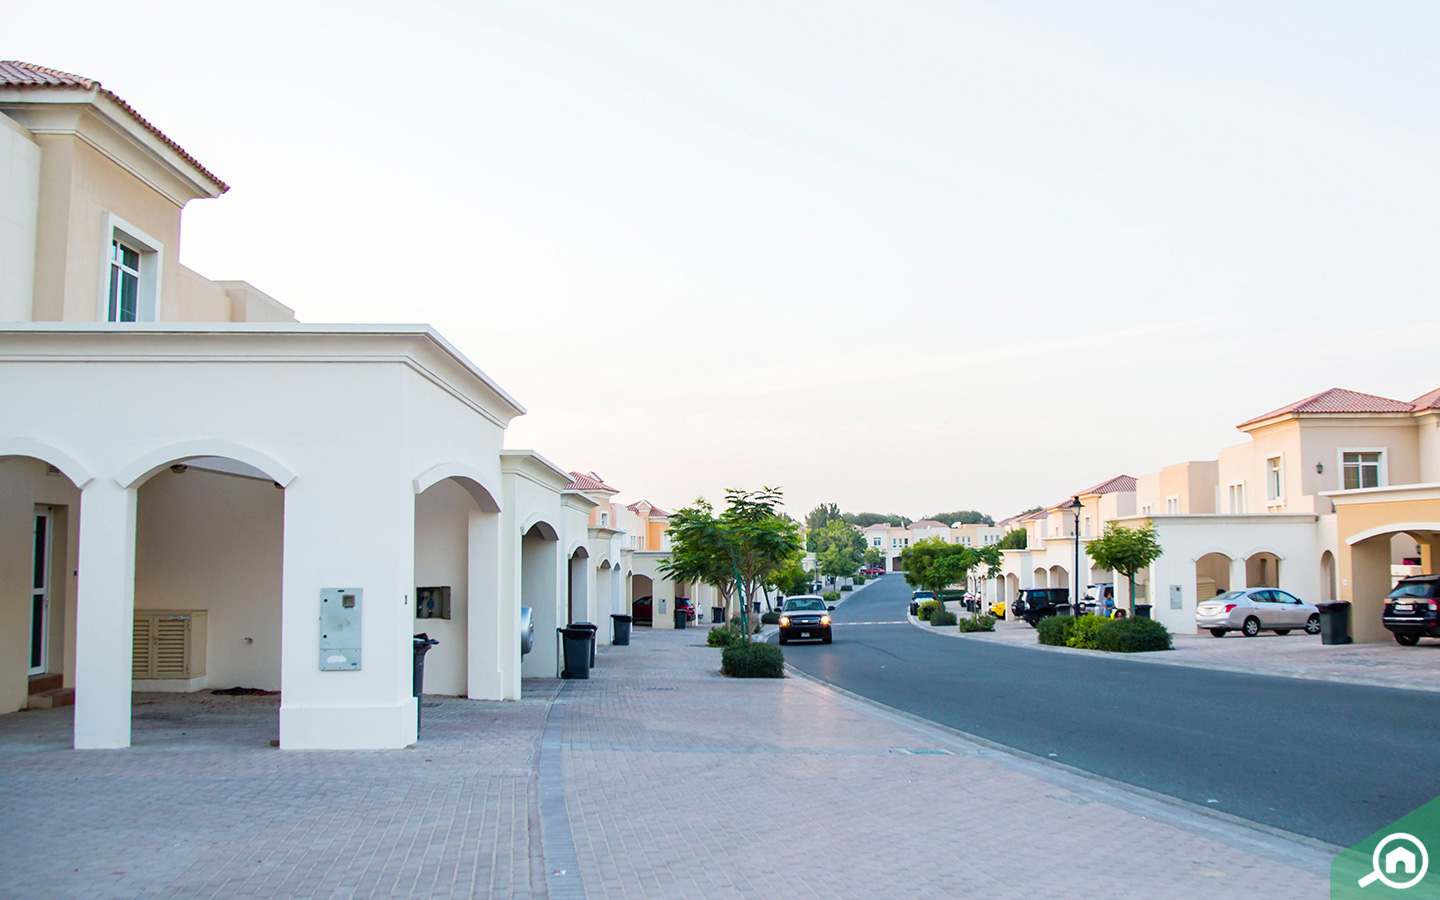 Townhouses in Arabian Ranches